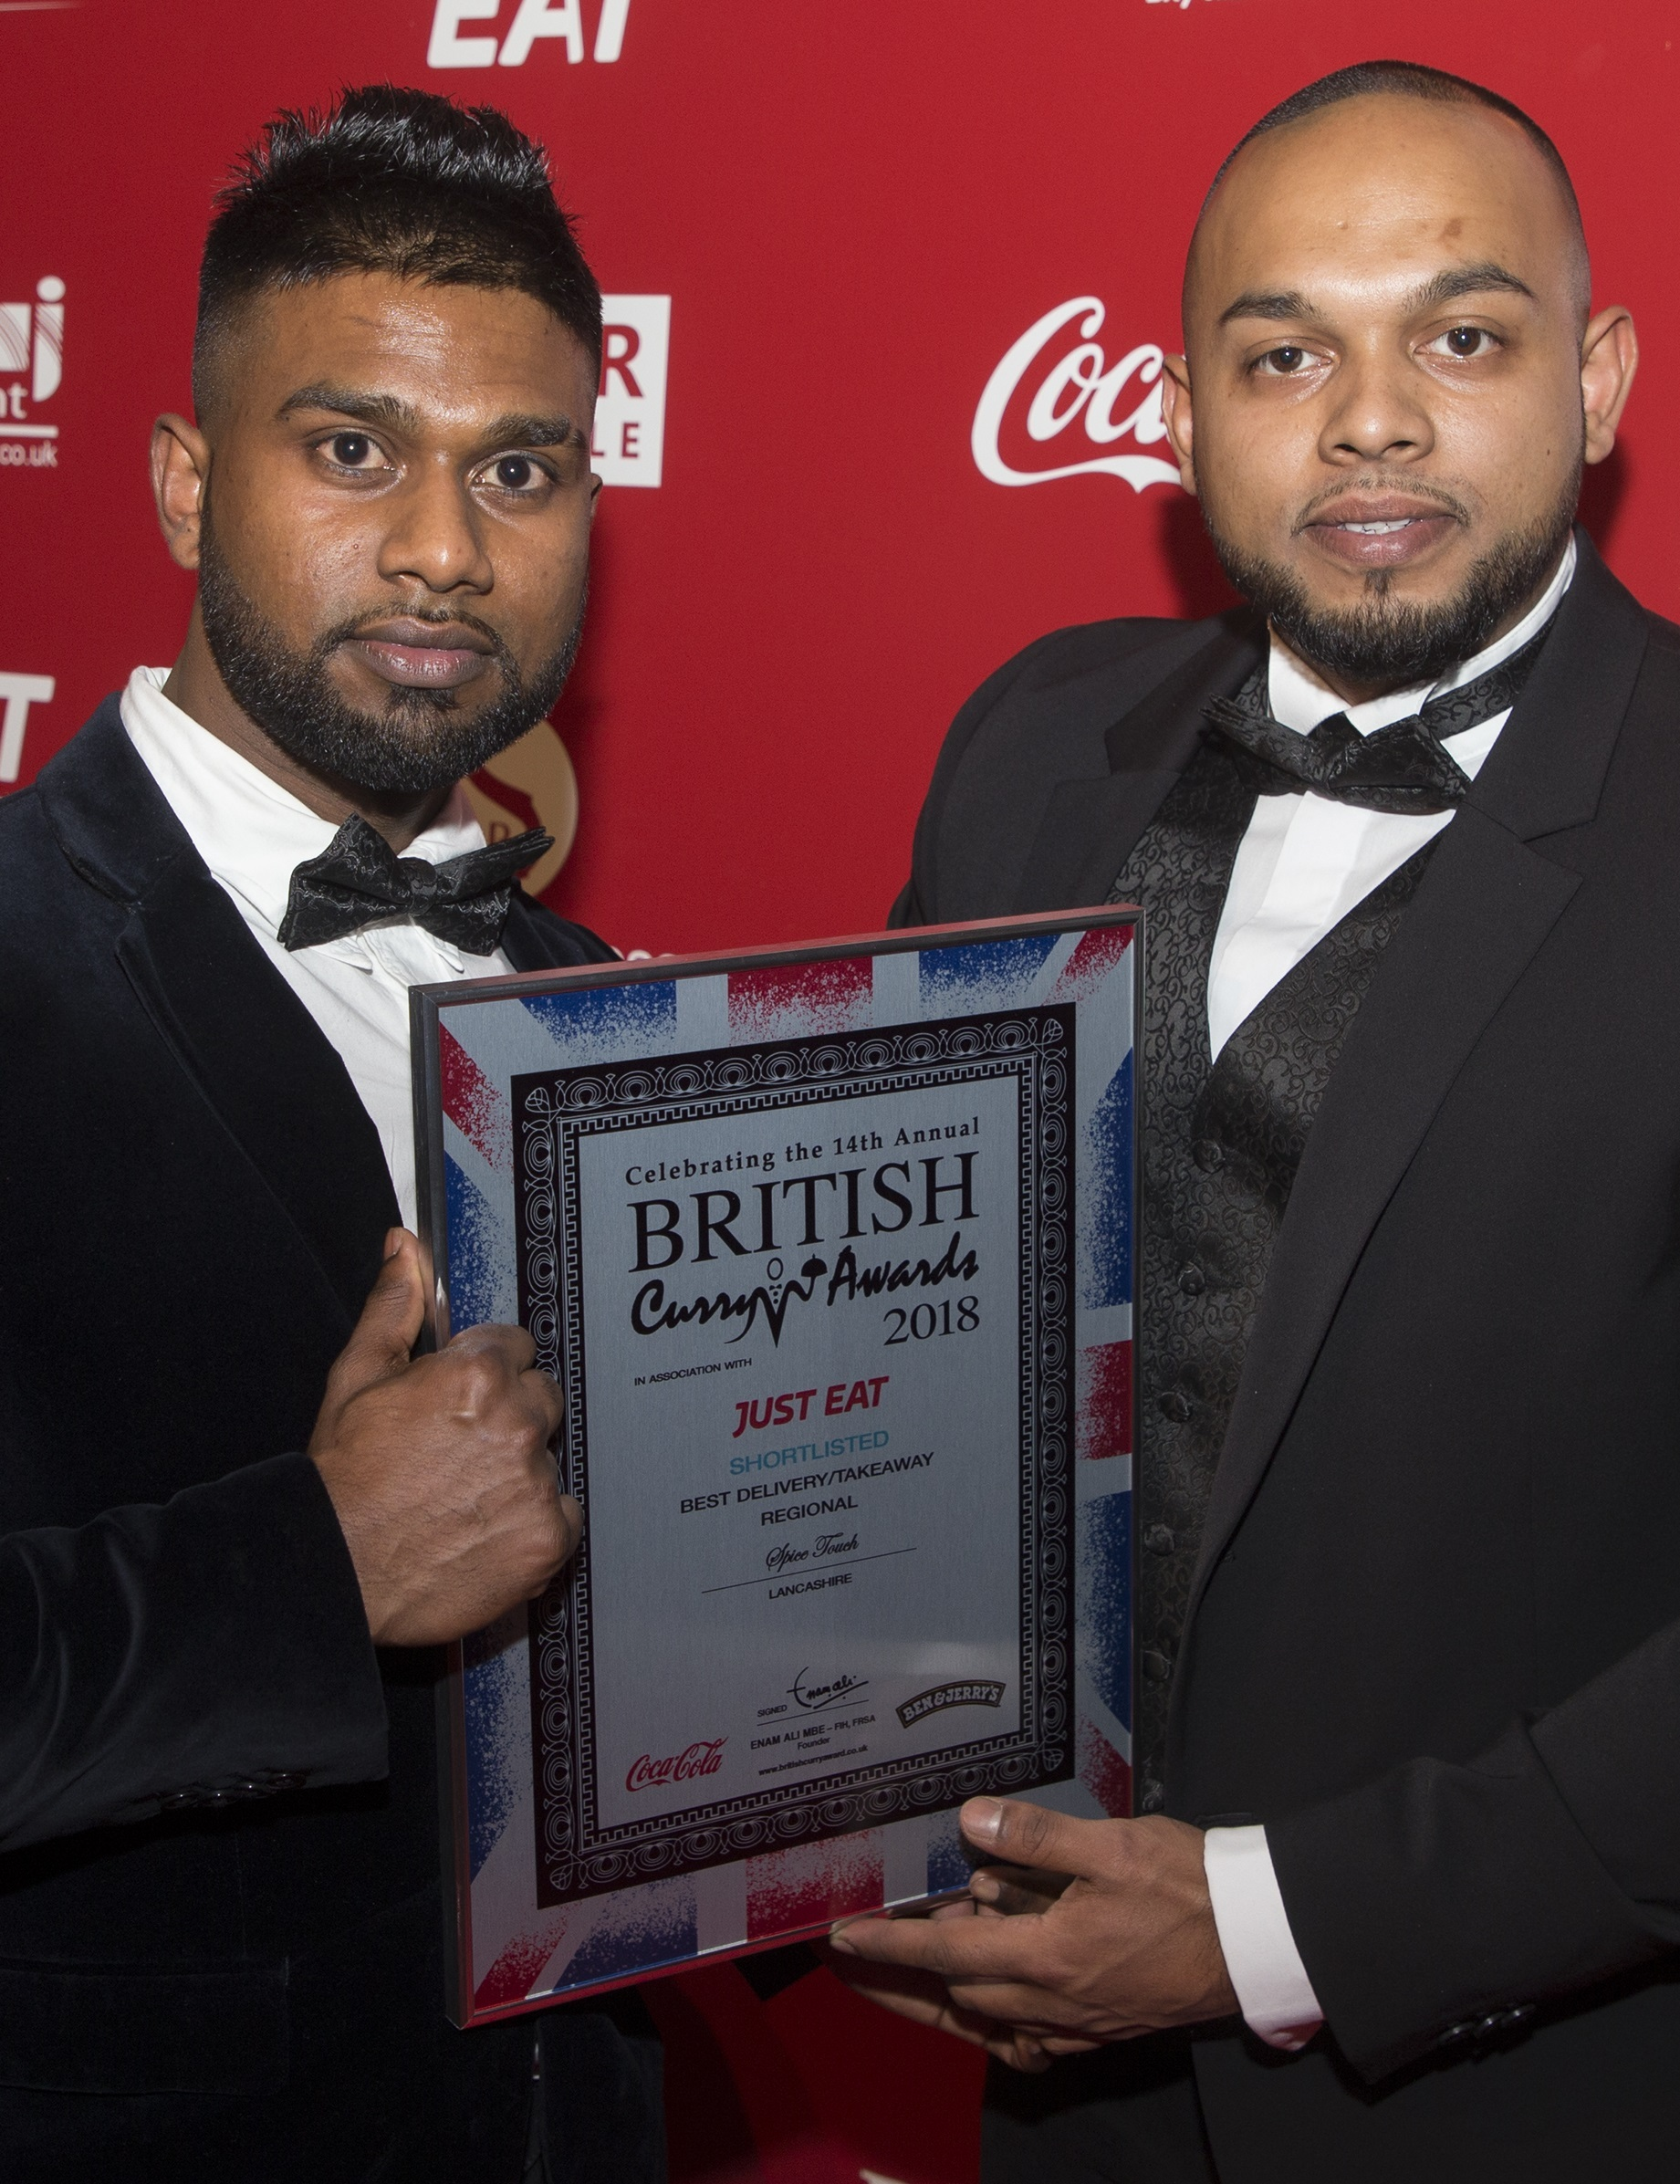 From left, Oly Uddin and Ali Miah with their latest award